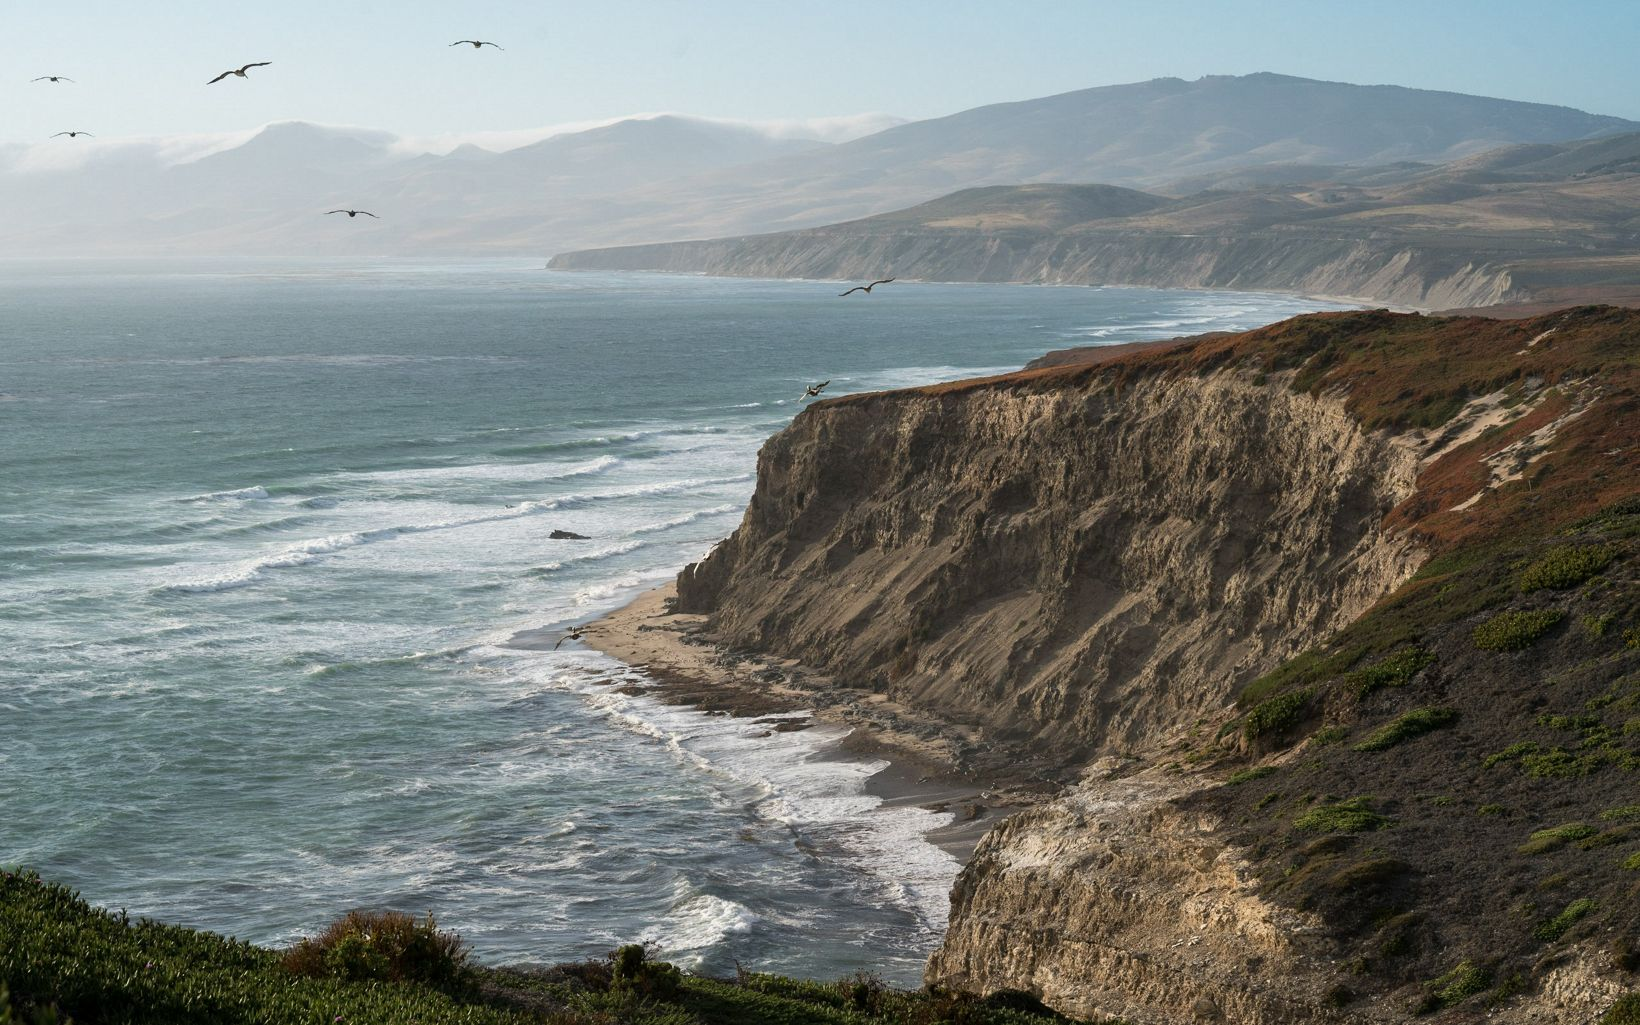 Jack and Laura Dangermond Preserve, a critical juncture between Northern and Southern California